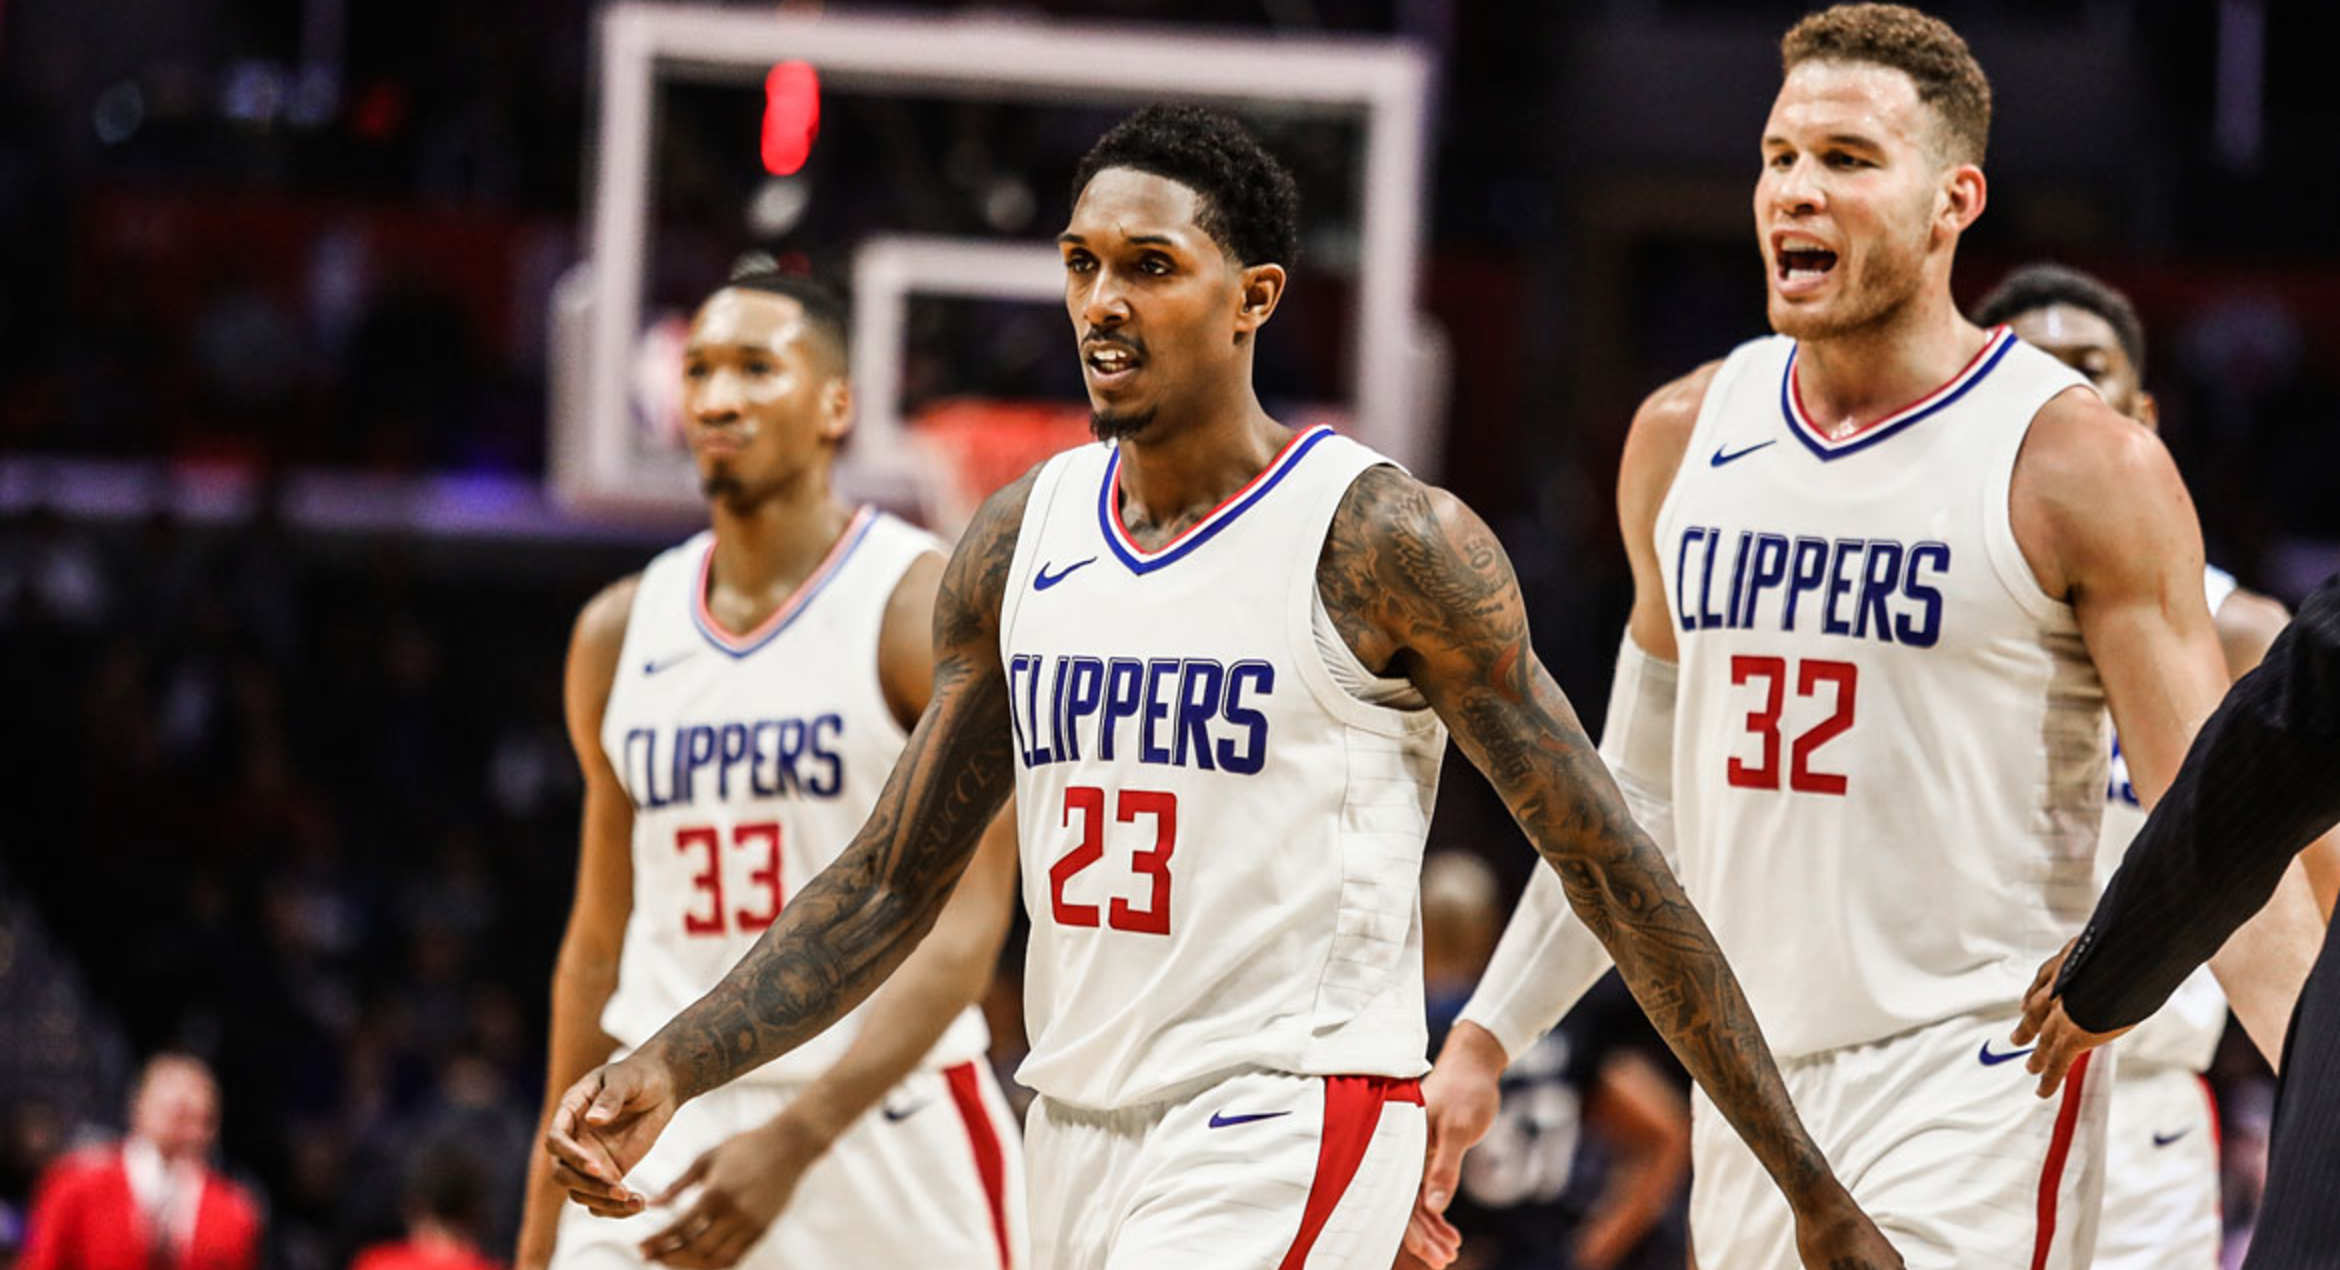 Game Preview: Clippers vs. Celtics